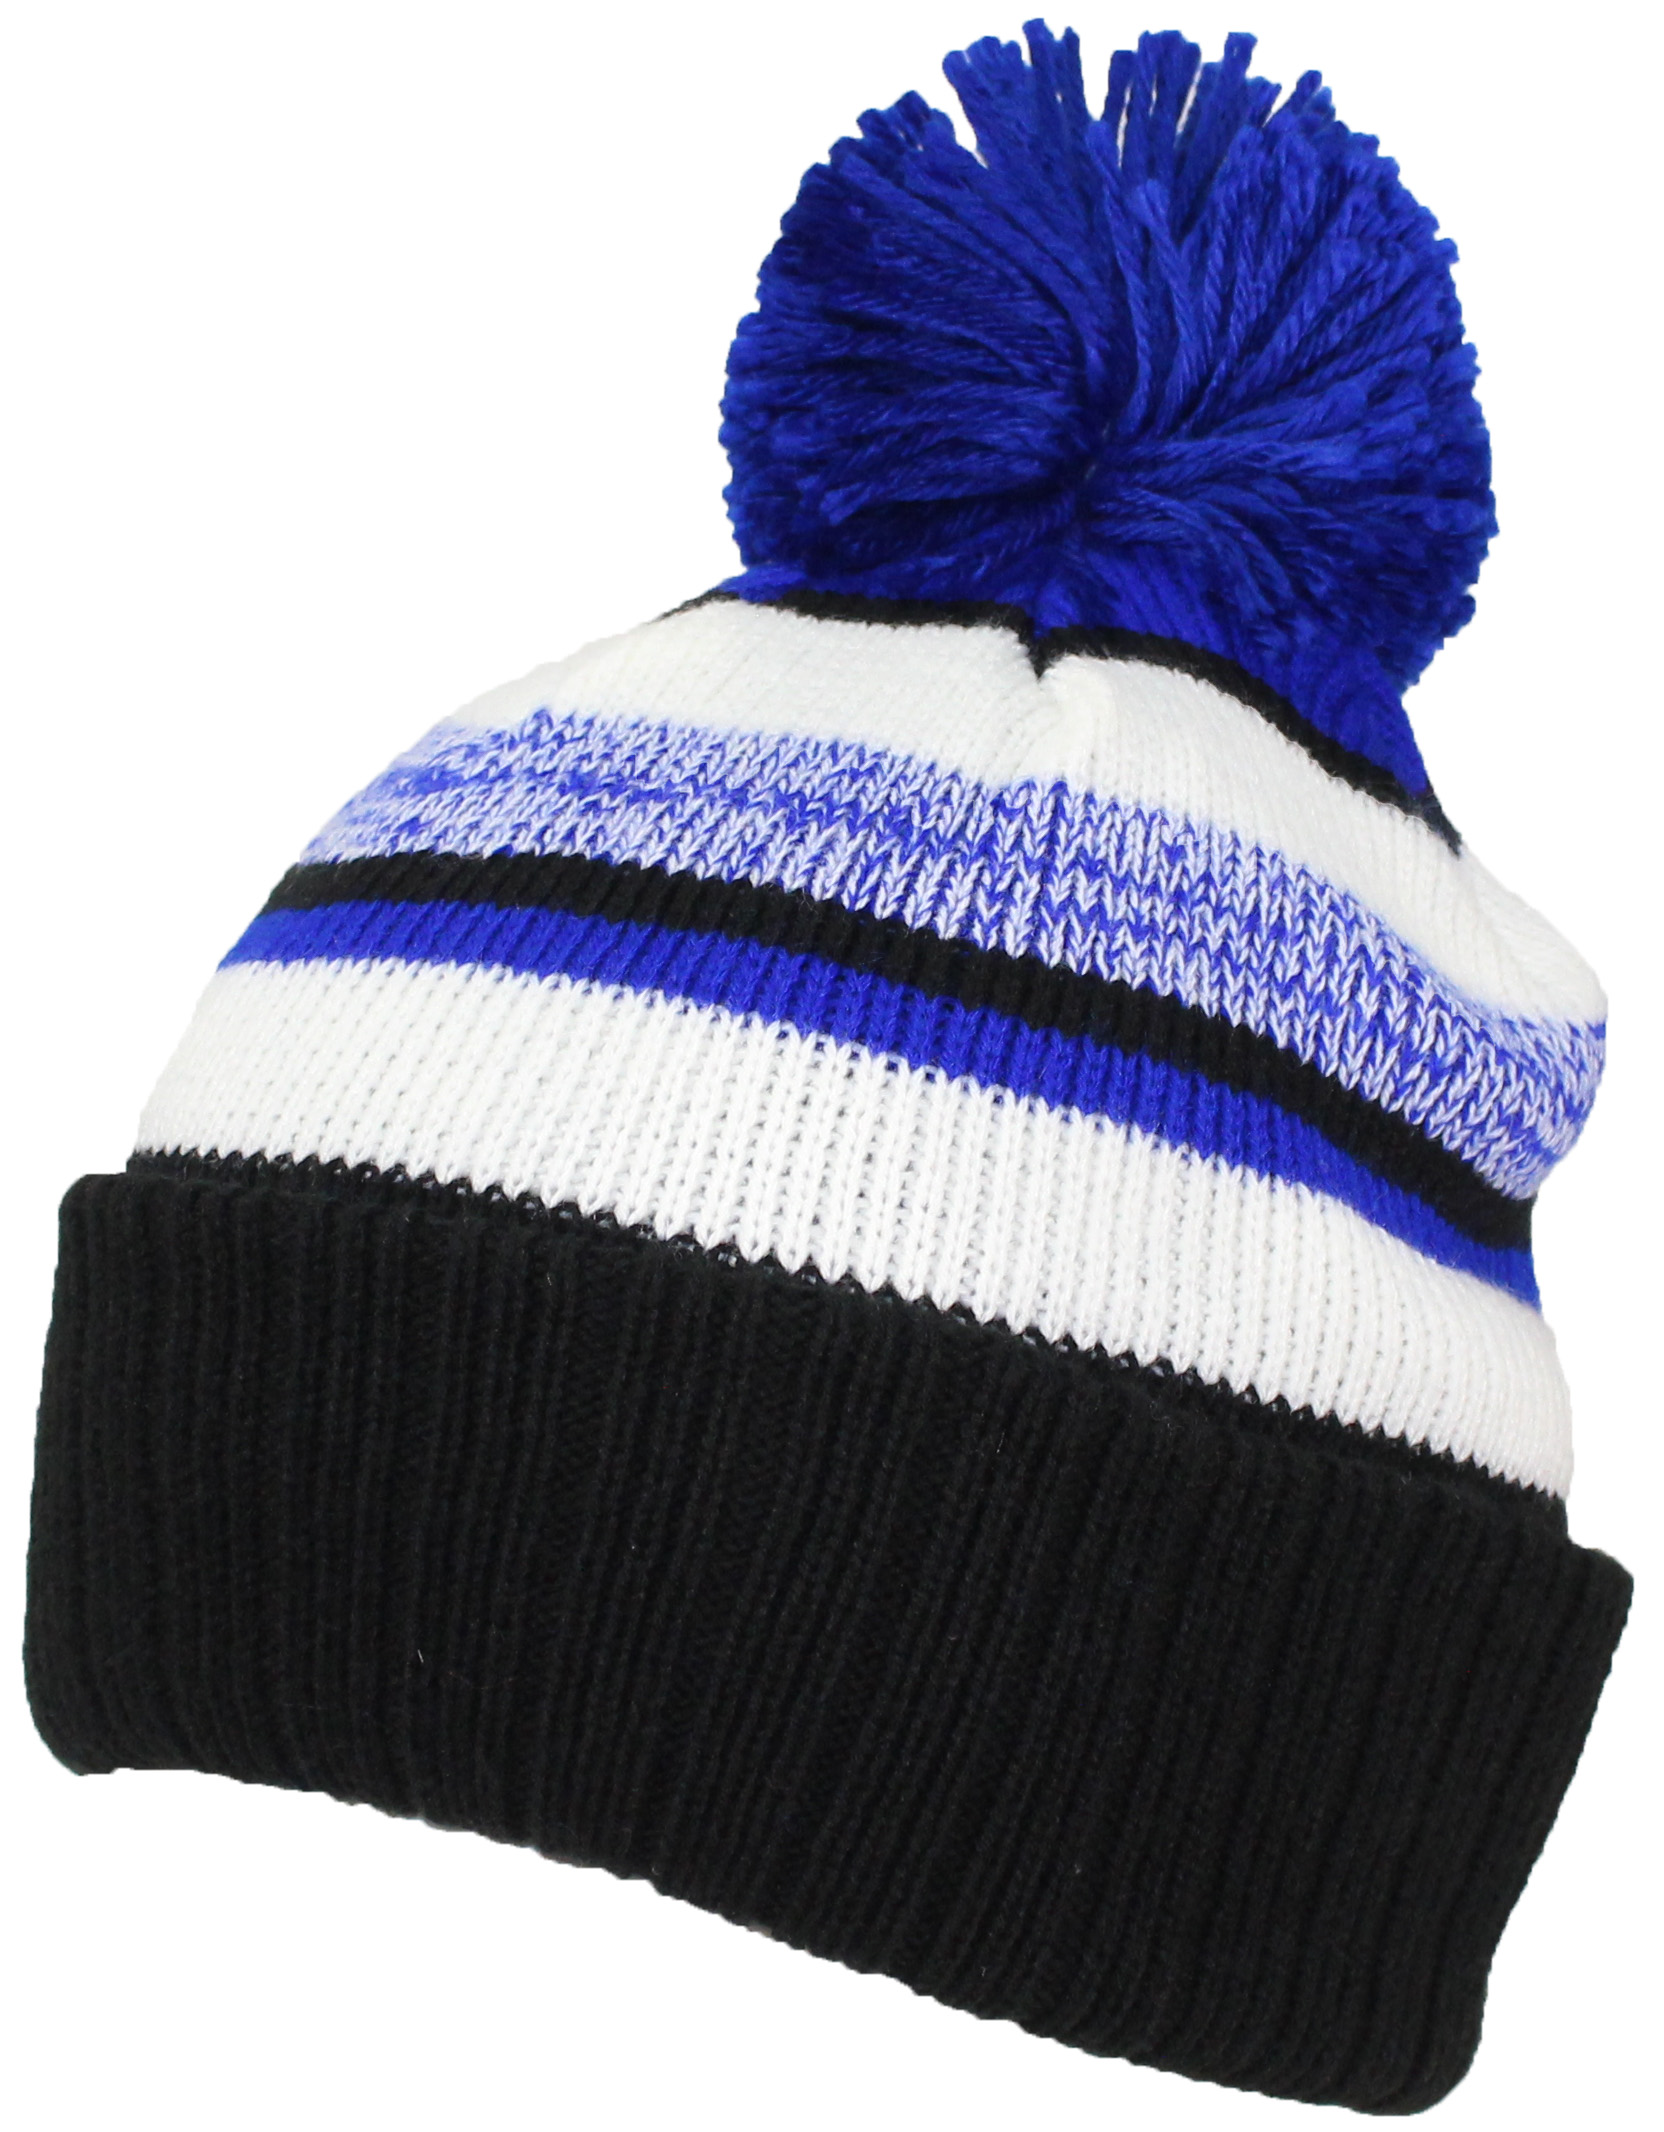 Best Winter Hats Quality Striped Variegated Cuffed Beanie W Pom L Xl 05d2f2fbd